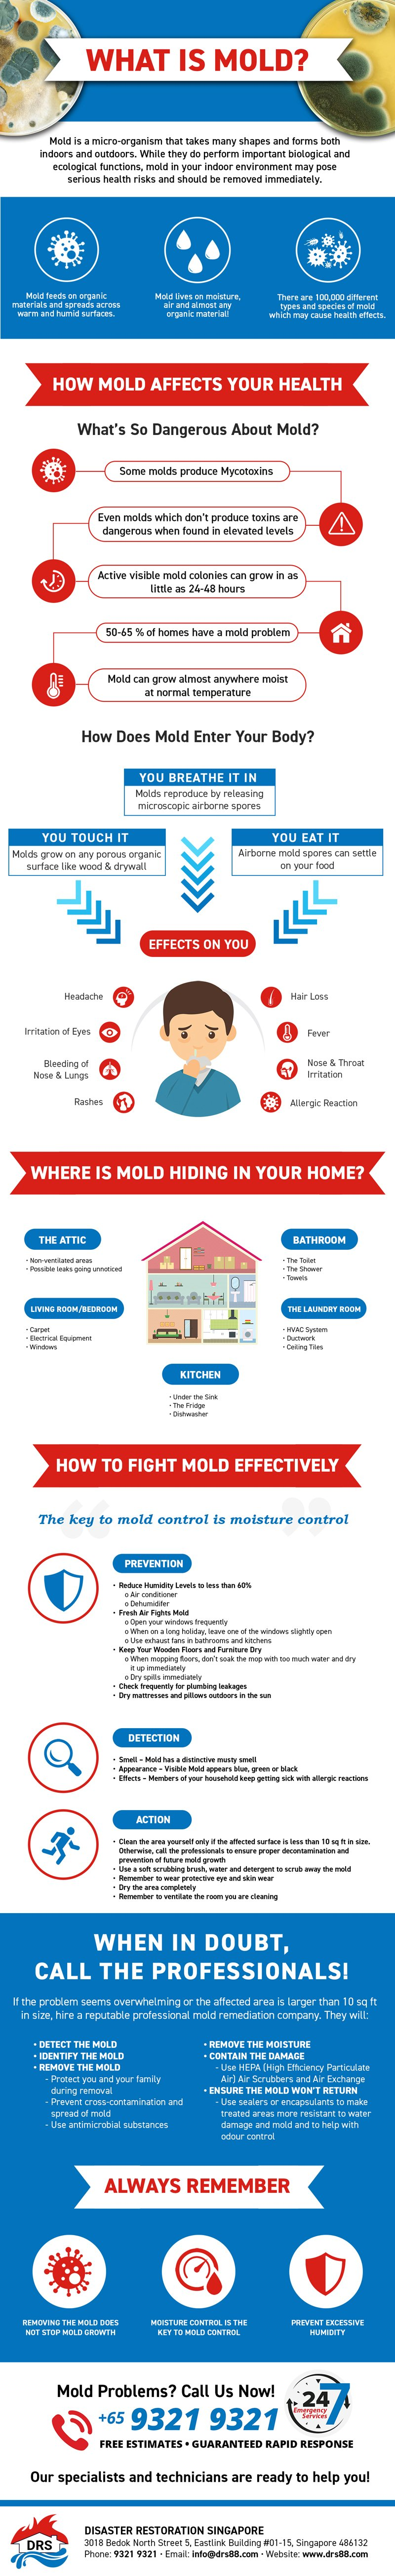 Infographic about Mold